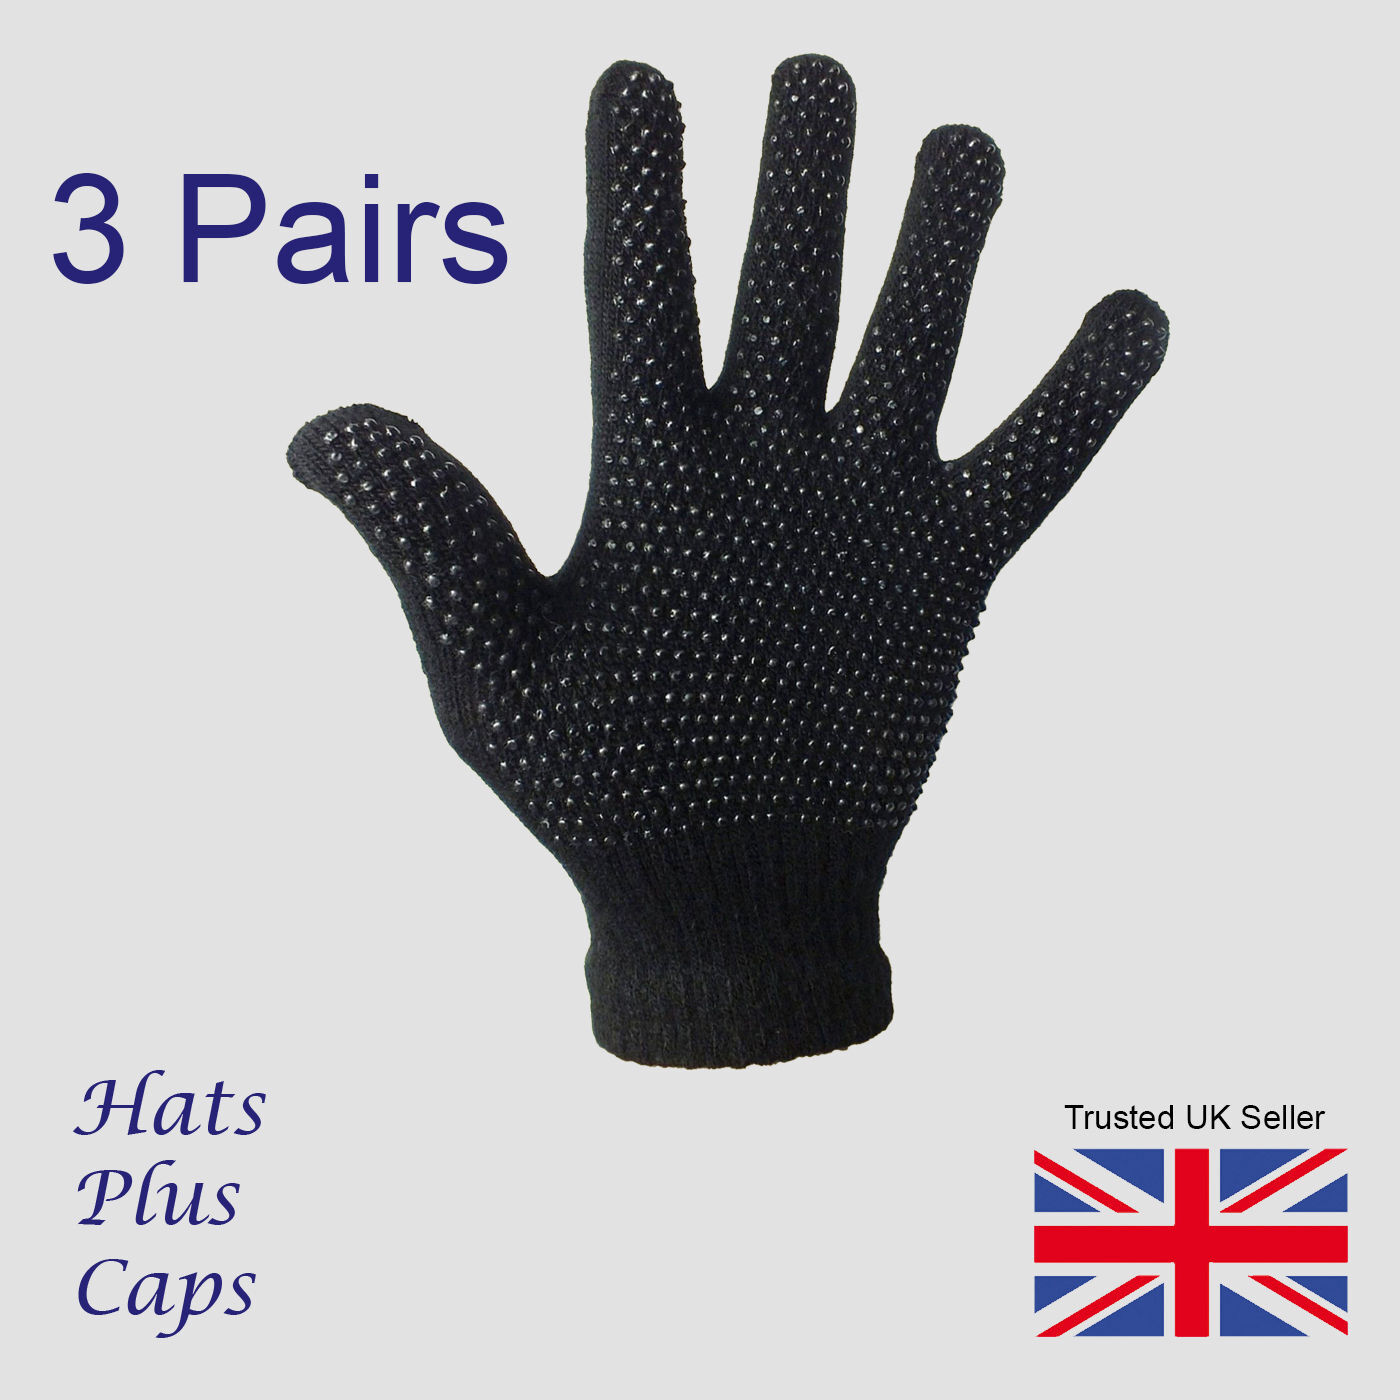 Black Gripper Gloves thermal stretch magic driving gloves winter warm 3 Pairs